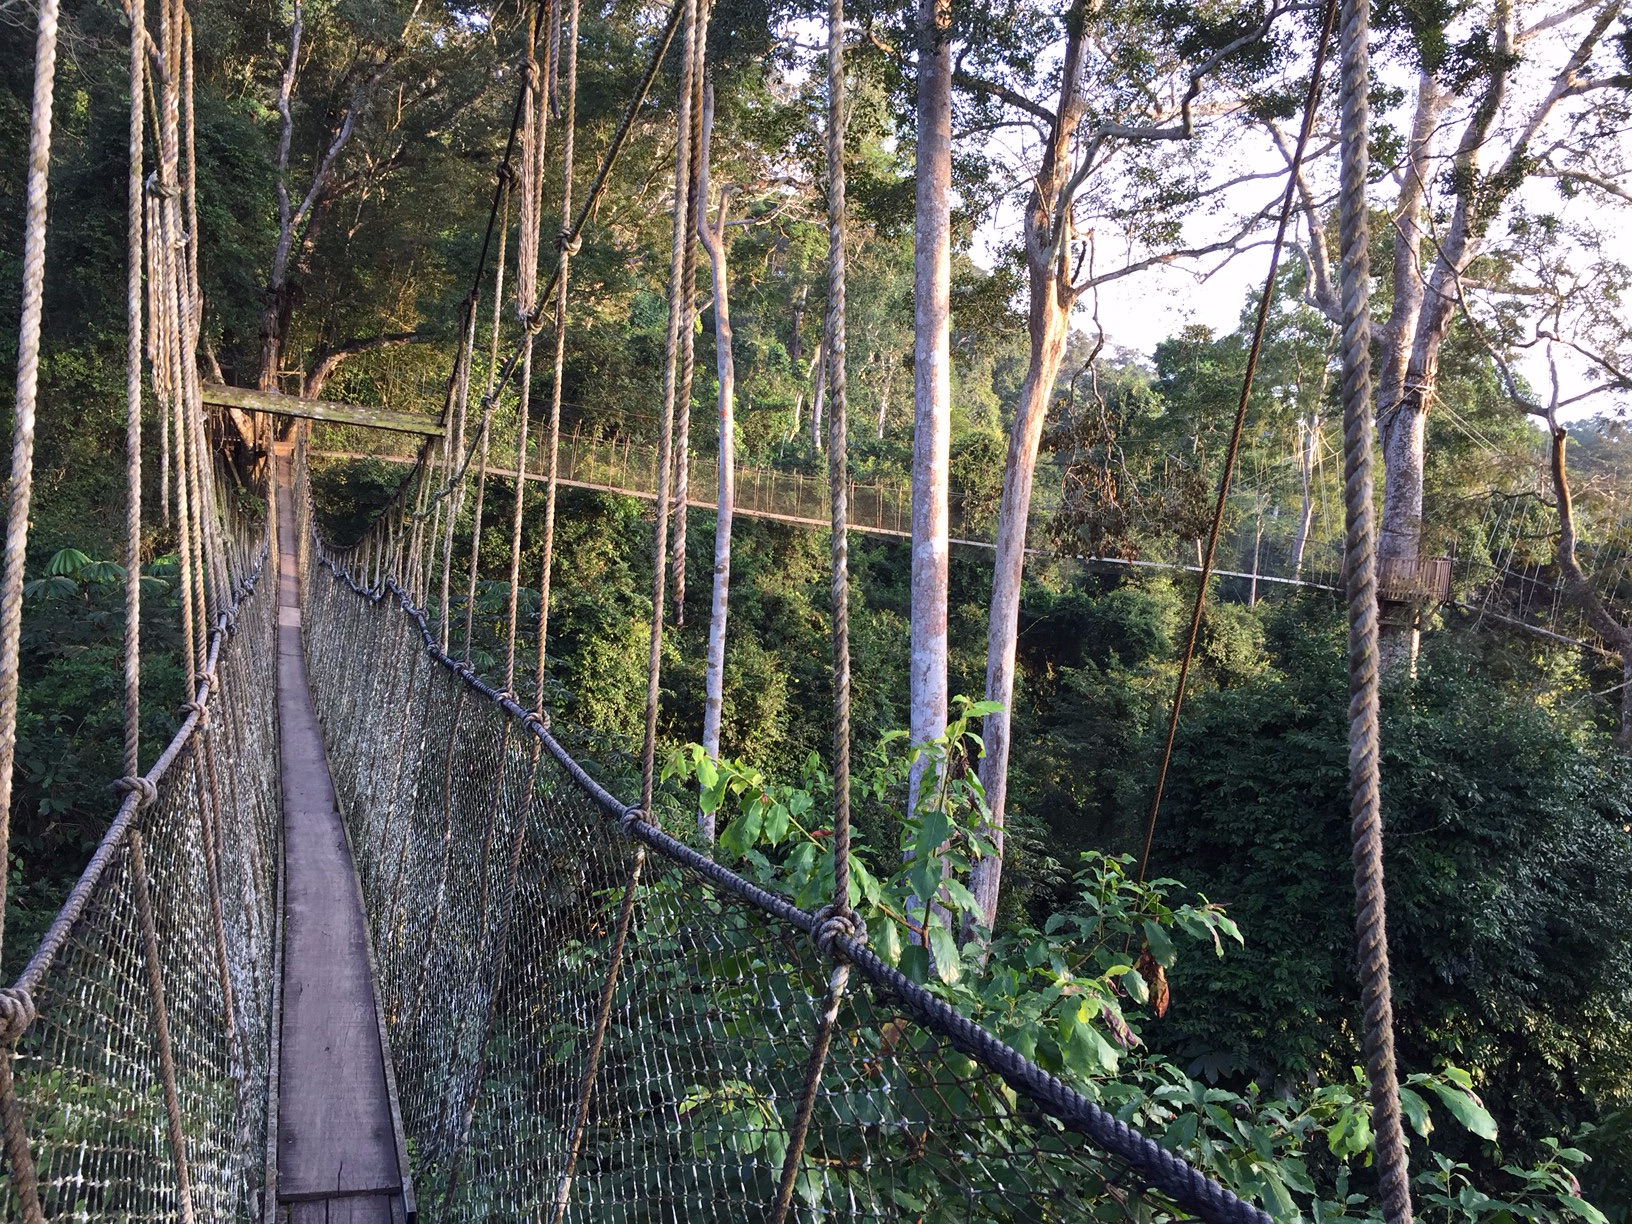 kakum Canopy Walkway by Nick Bray